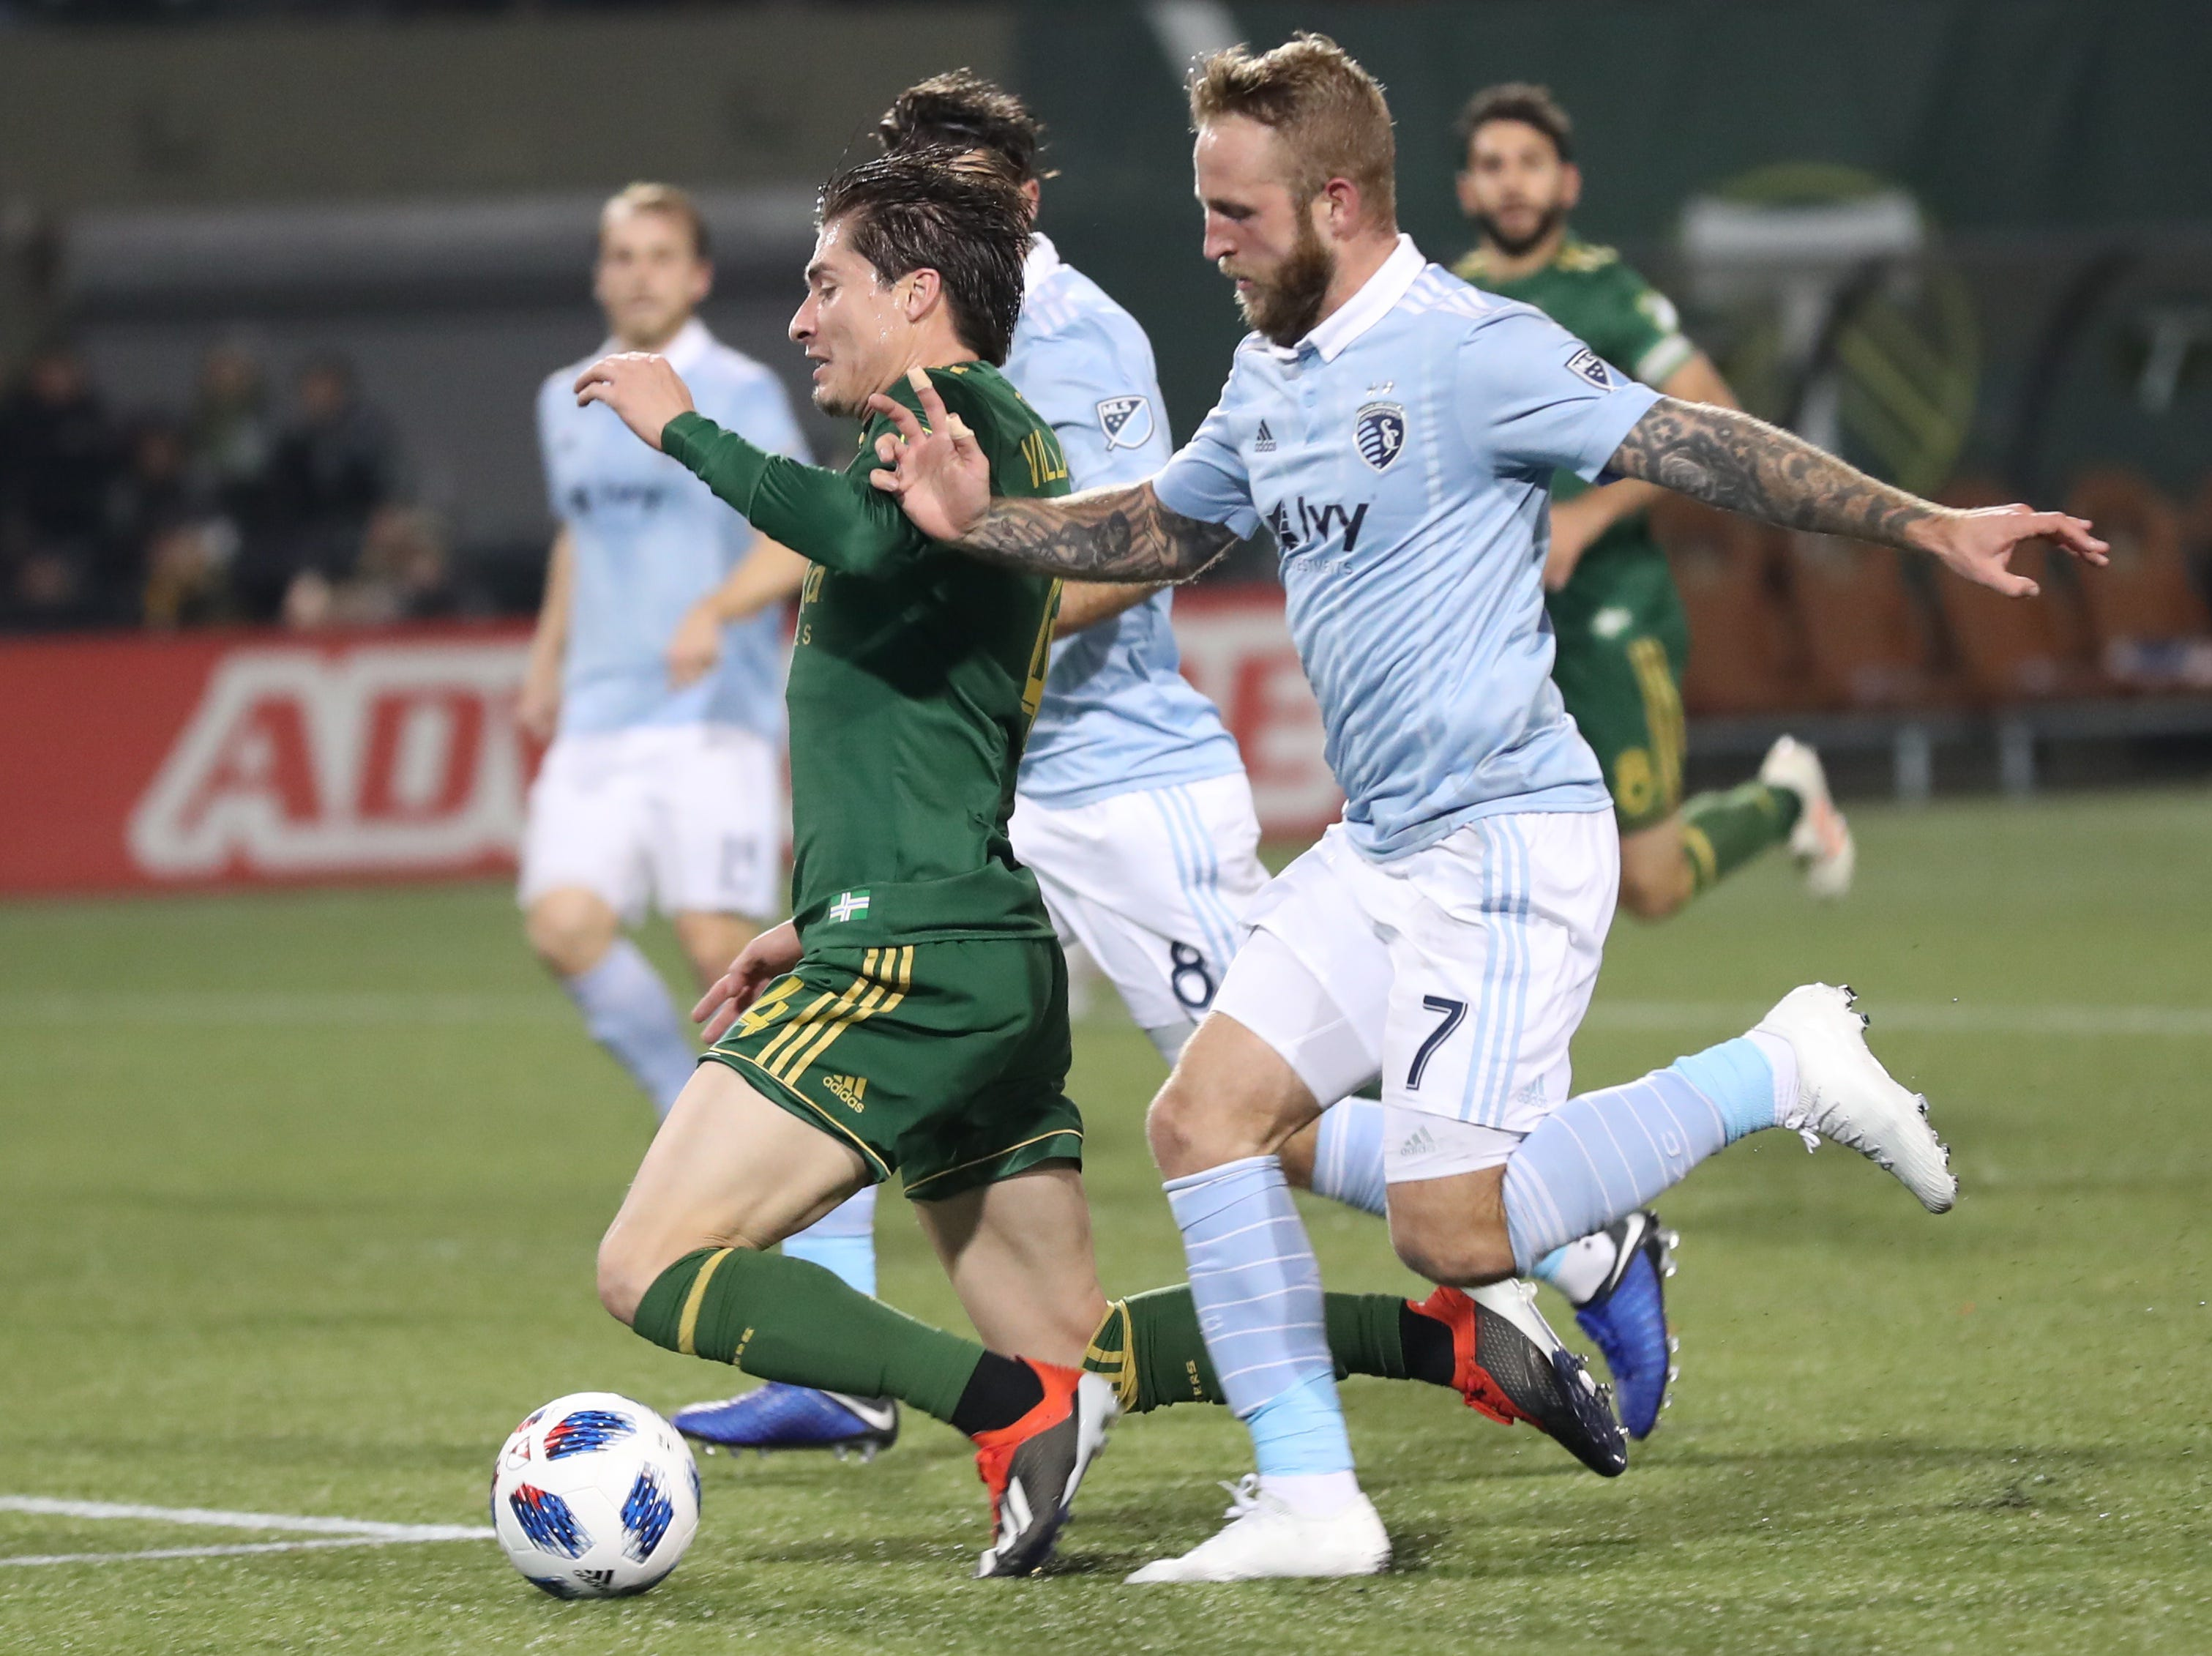 Nov 25, 2018; Portland, OR, USA; The feet of Portland Timbers defender Jorge Villafana (4) and Sporting Kansas City forward Johnny Russell (7) get tangled up in the penalty box in the second of the first leg of the MLS Western Conference Championship at Providence Park. Mandatory Credit: Jaime Valdez-USA TODAY Sports